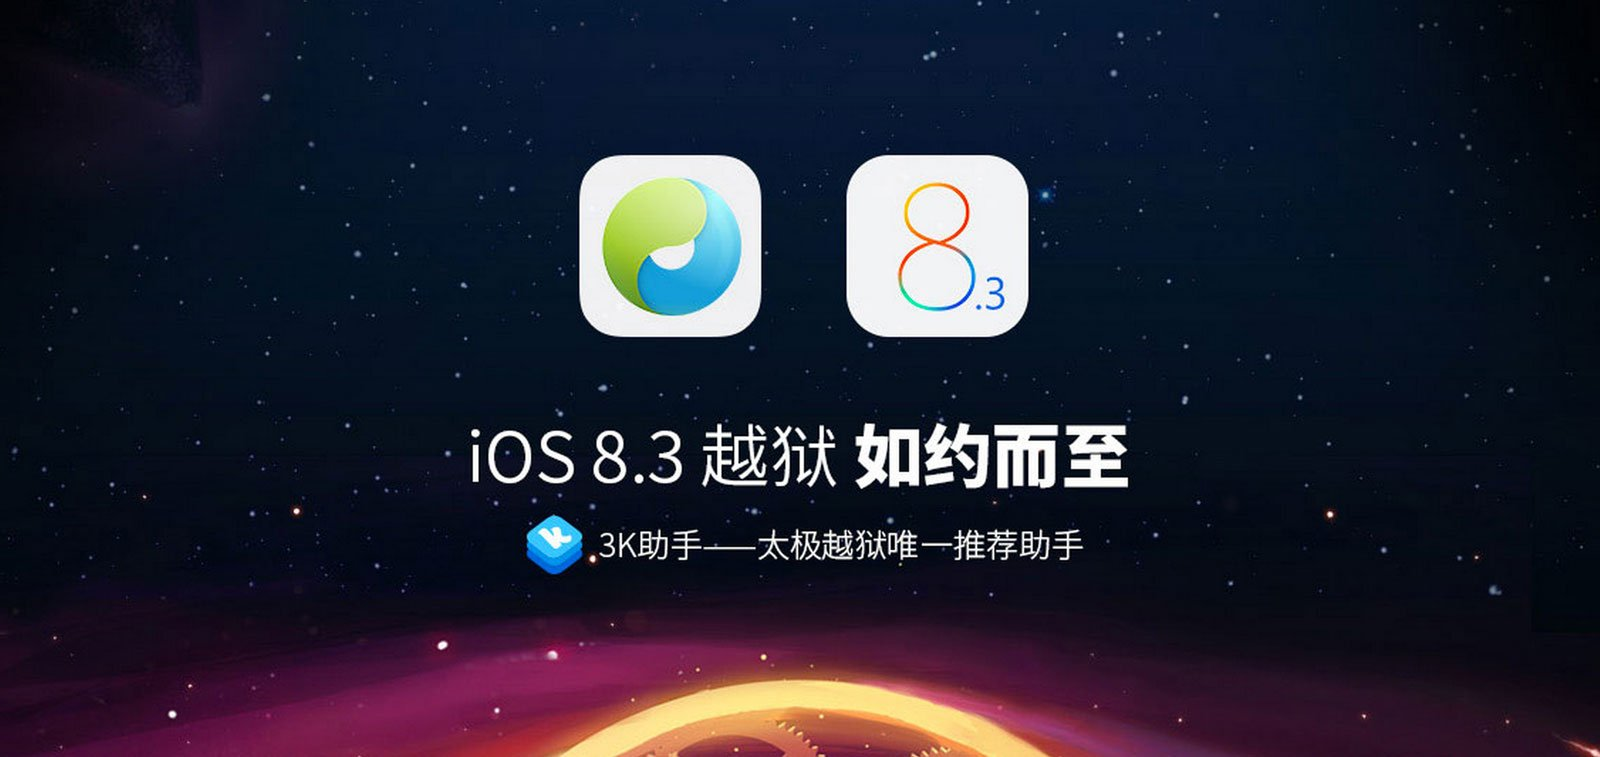 Download TaiG 2.1.1: iOS 8.3 Jailbreak Update mit Cydia 1.1.18! 5